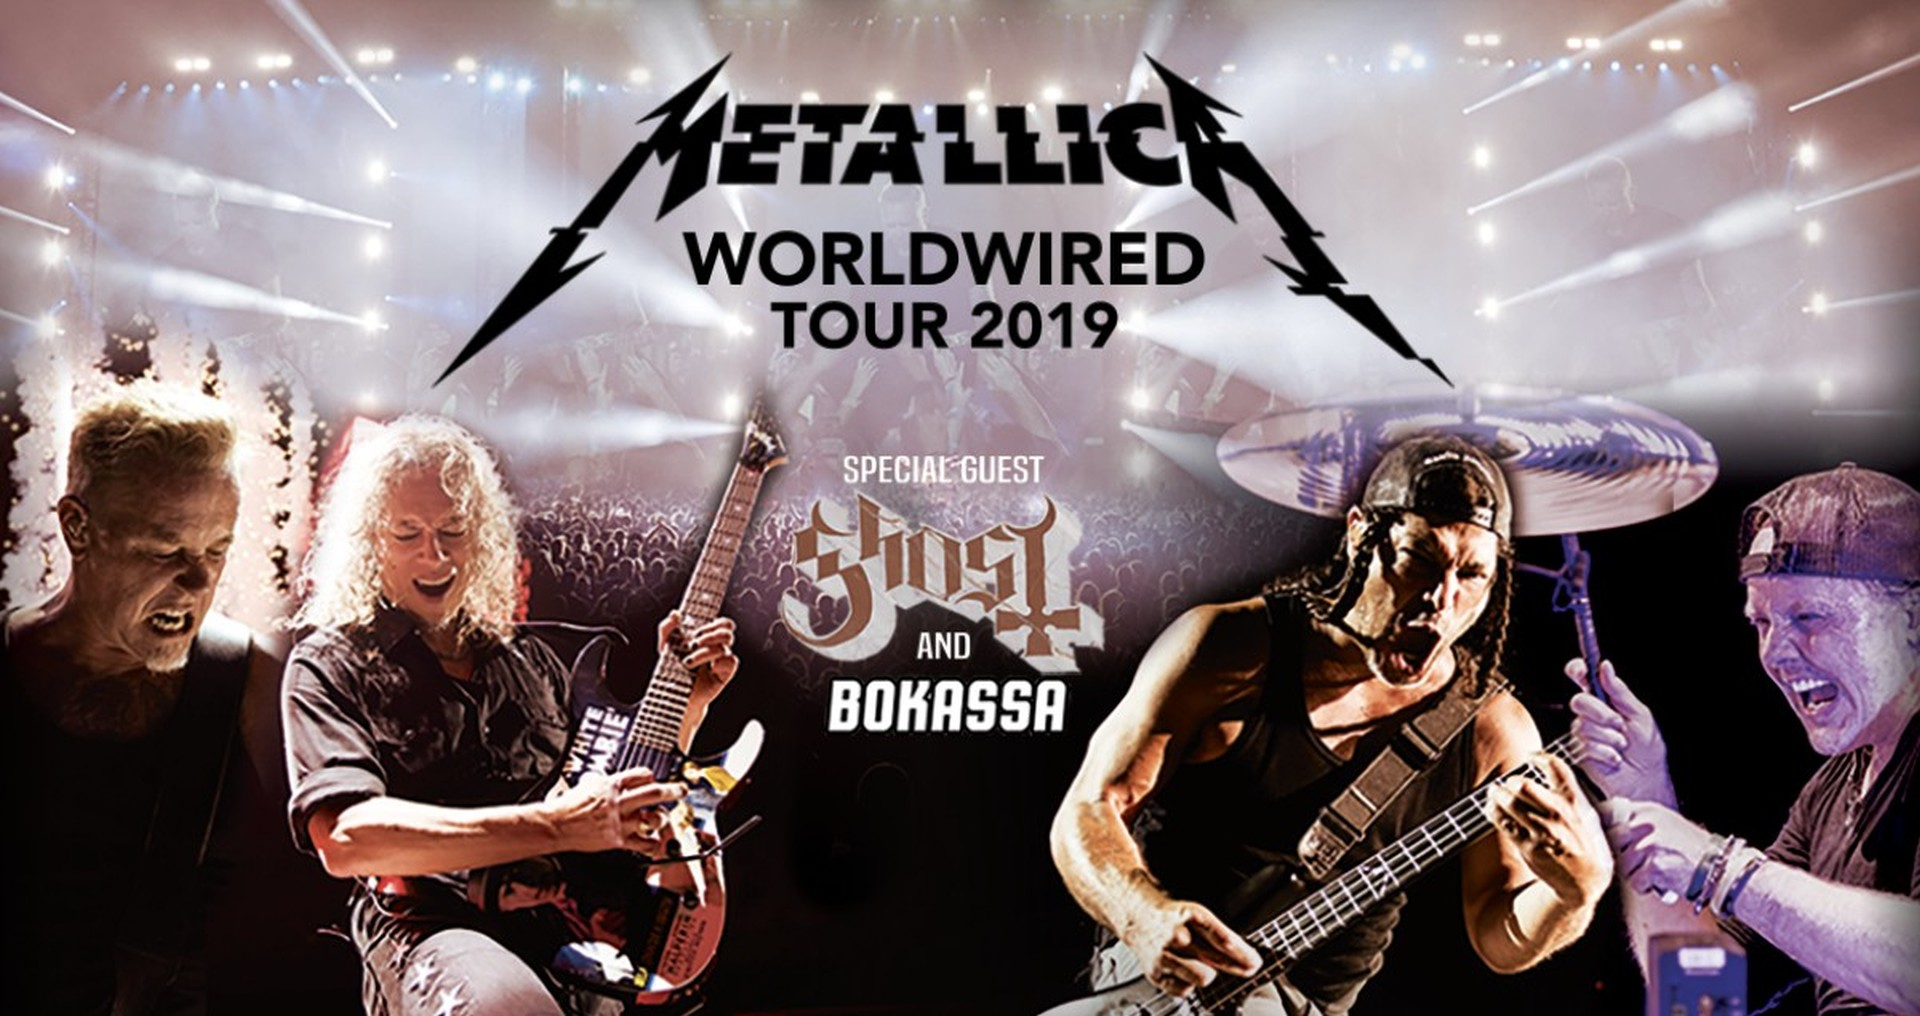 worldwired-2019-1200x12001.jpg